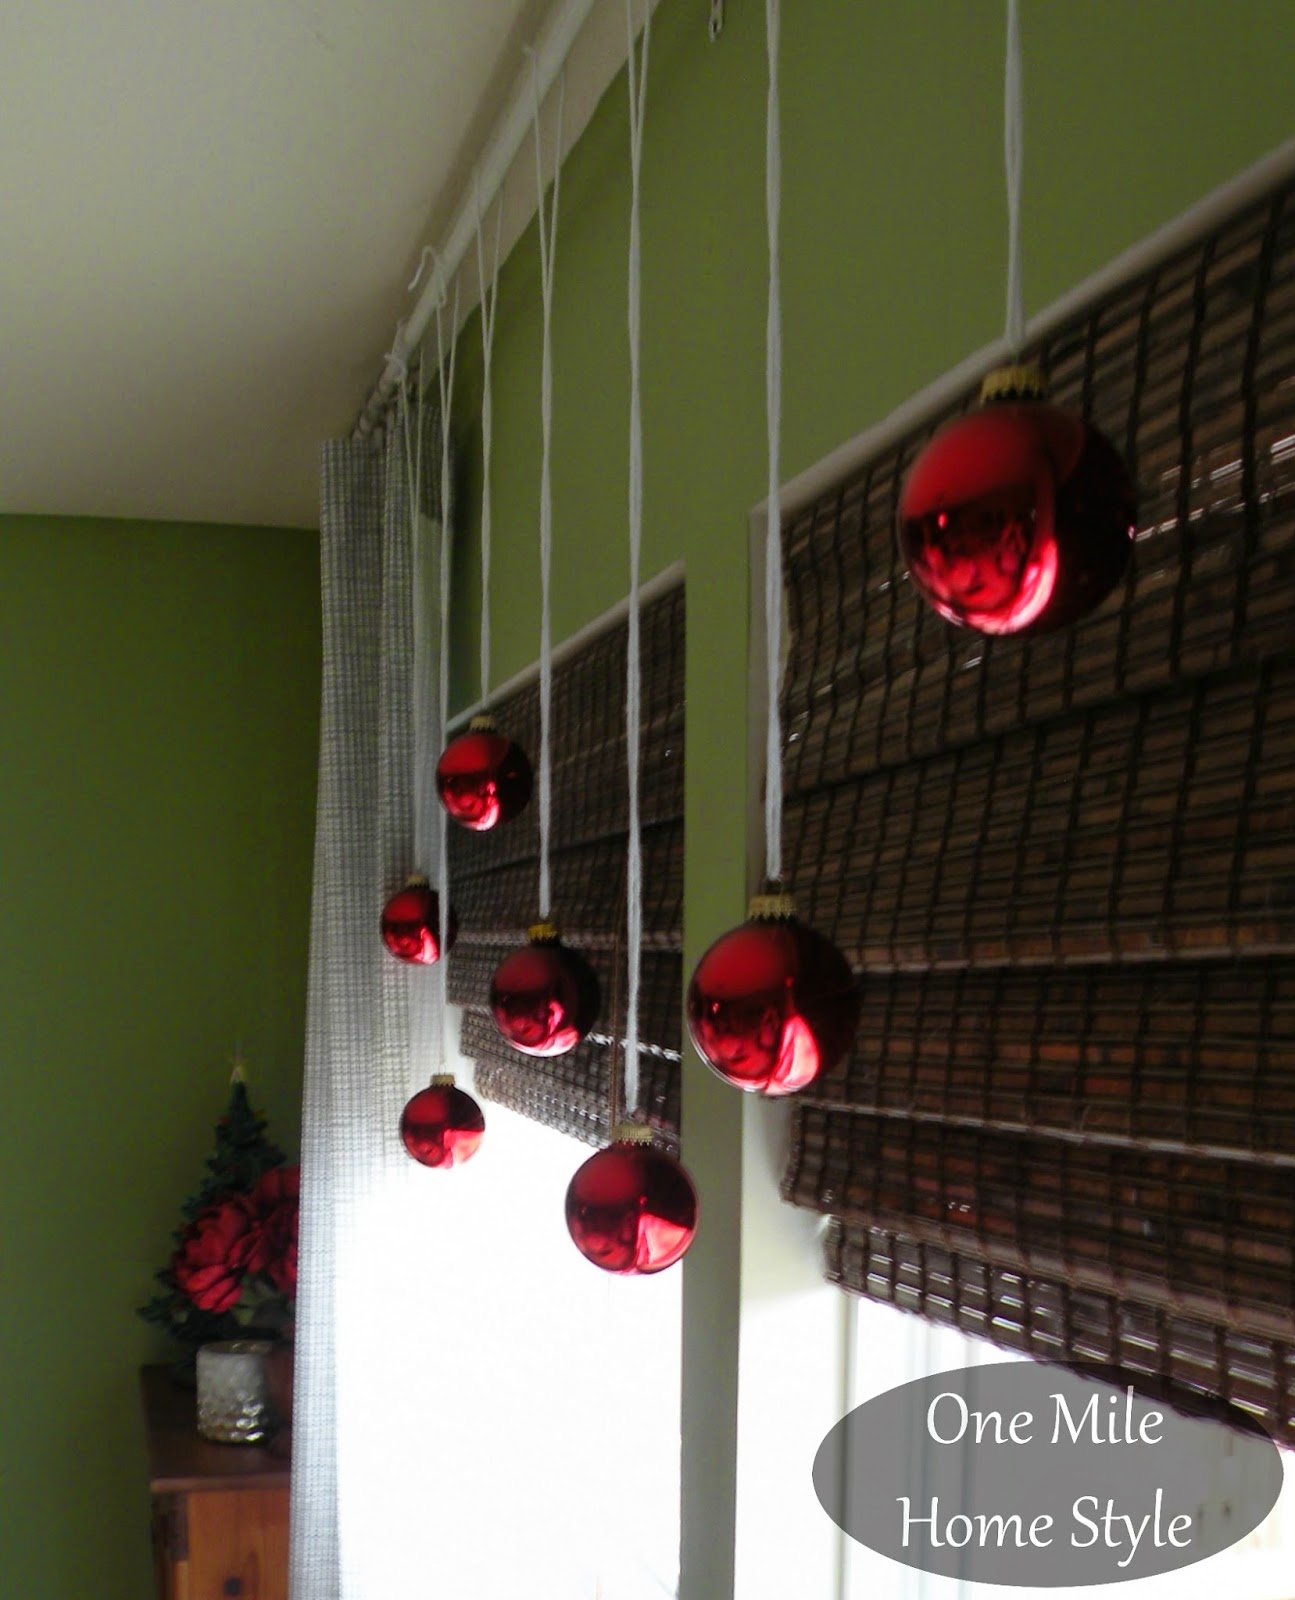 DIY Yarn and Christmas Ornament window decorations